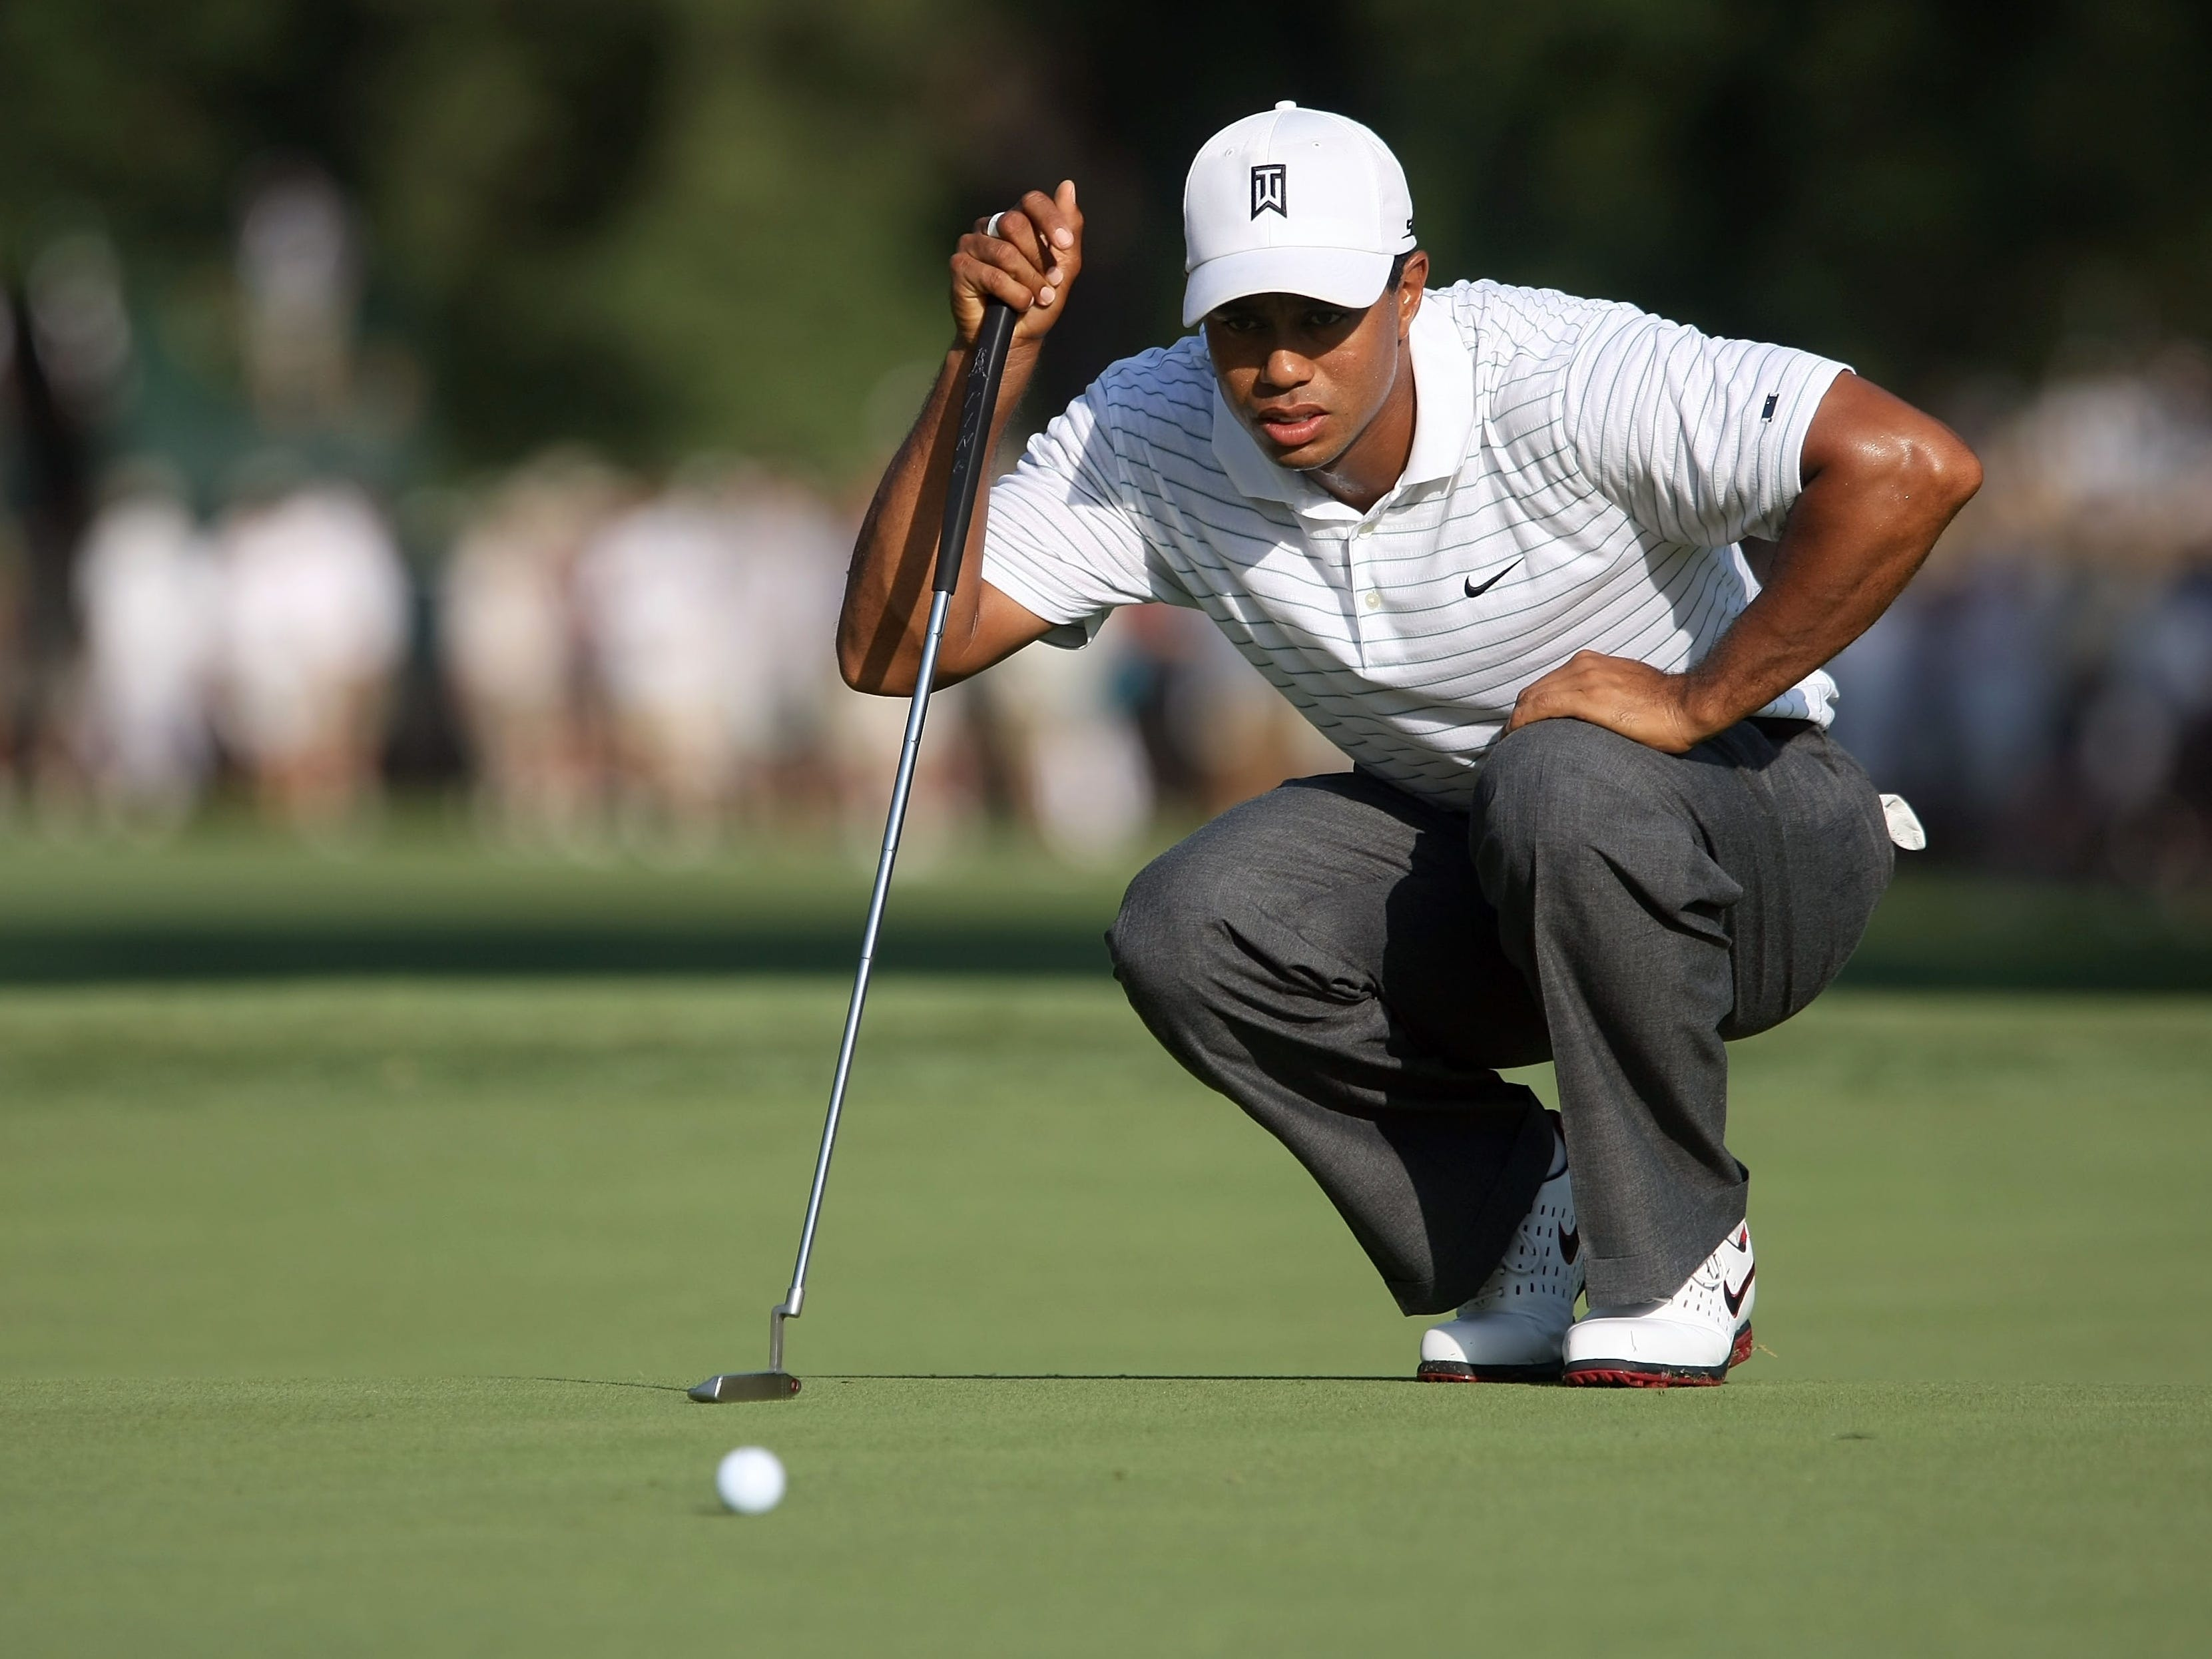 In July 2007, Tiger Woods ruptured his ACL while running on a golf course after the British Open. He goes on to win five of his next six tournaments, including the PGA Championship (shown here).